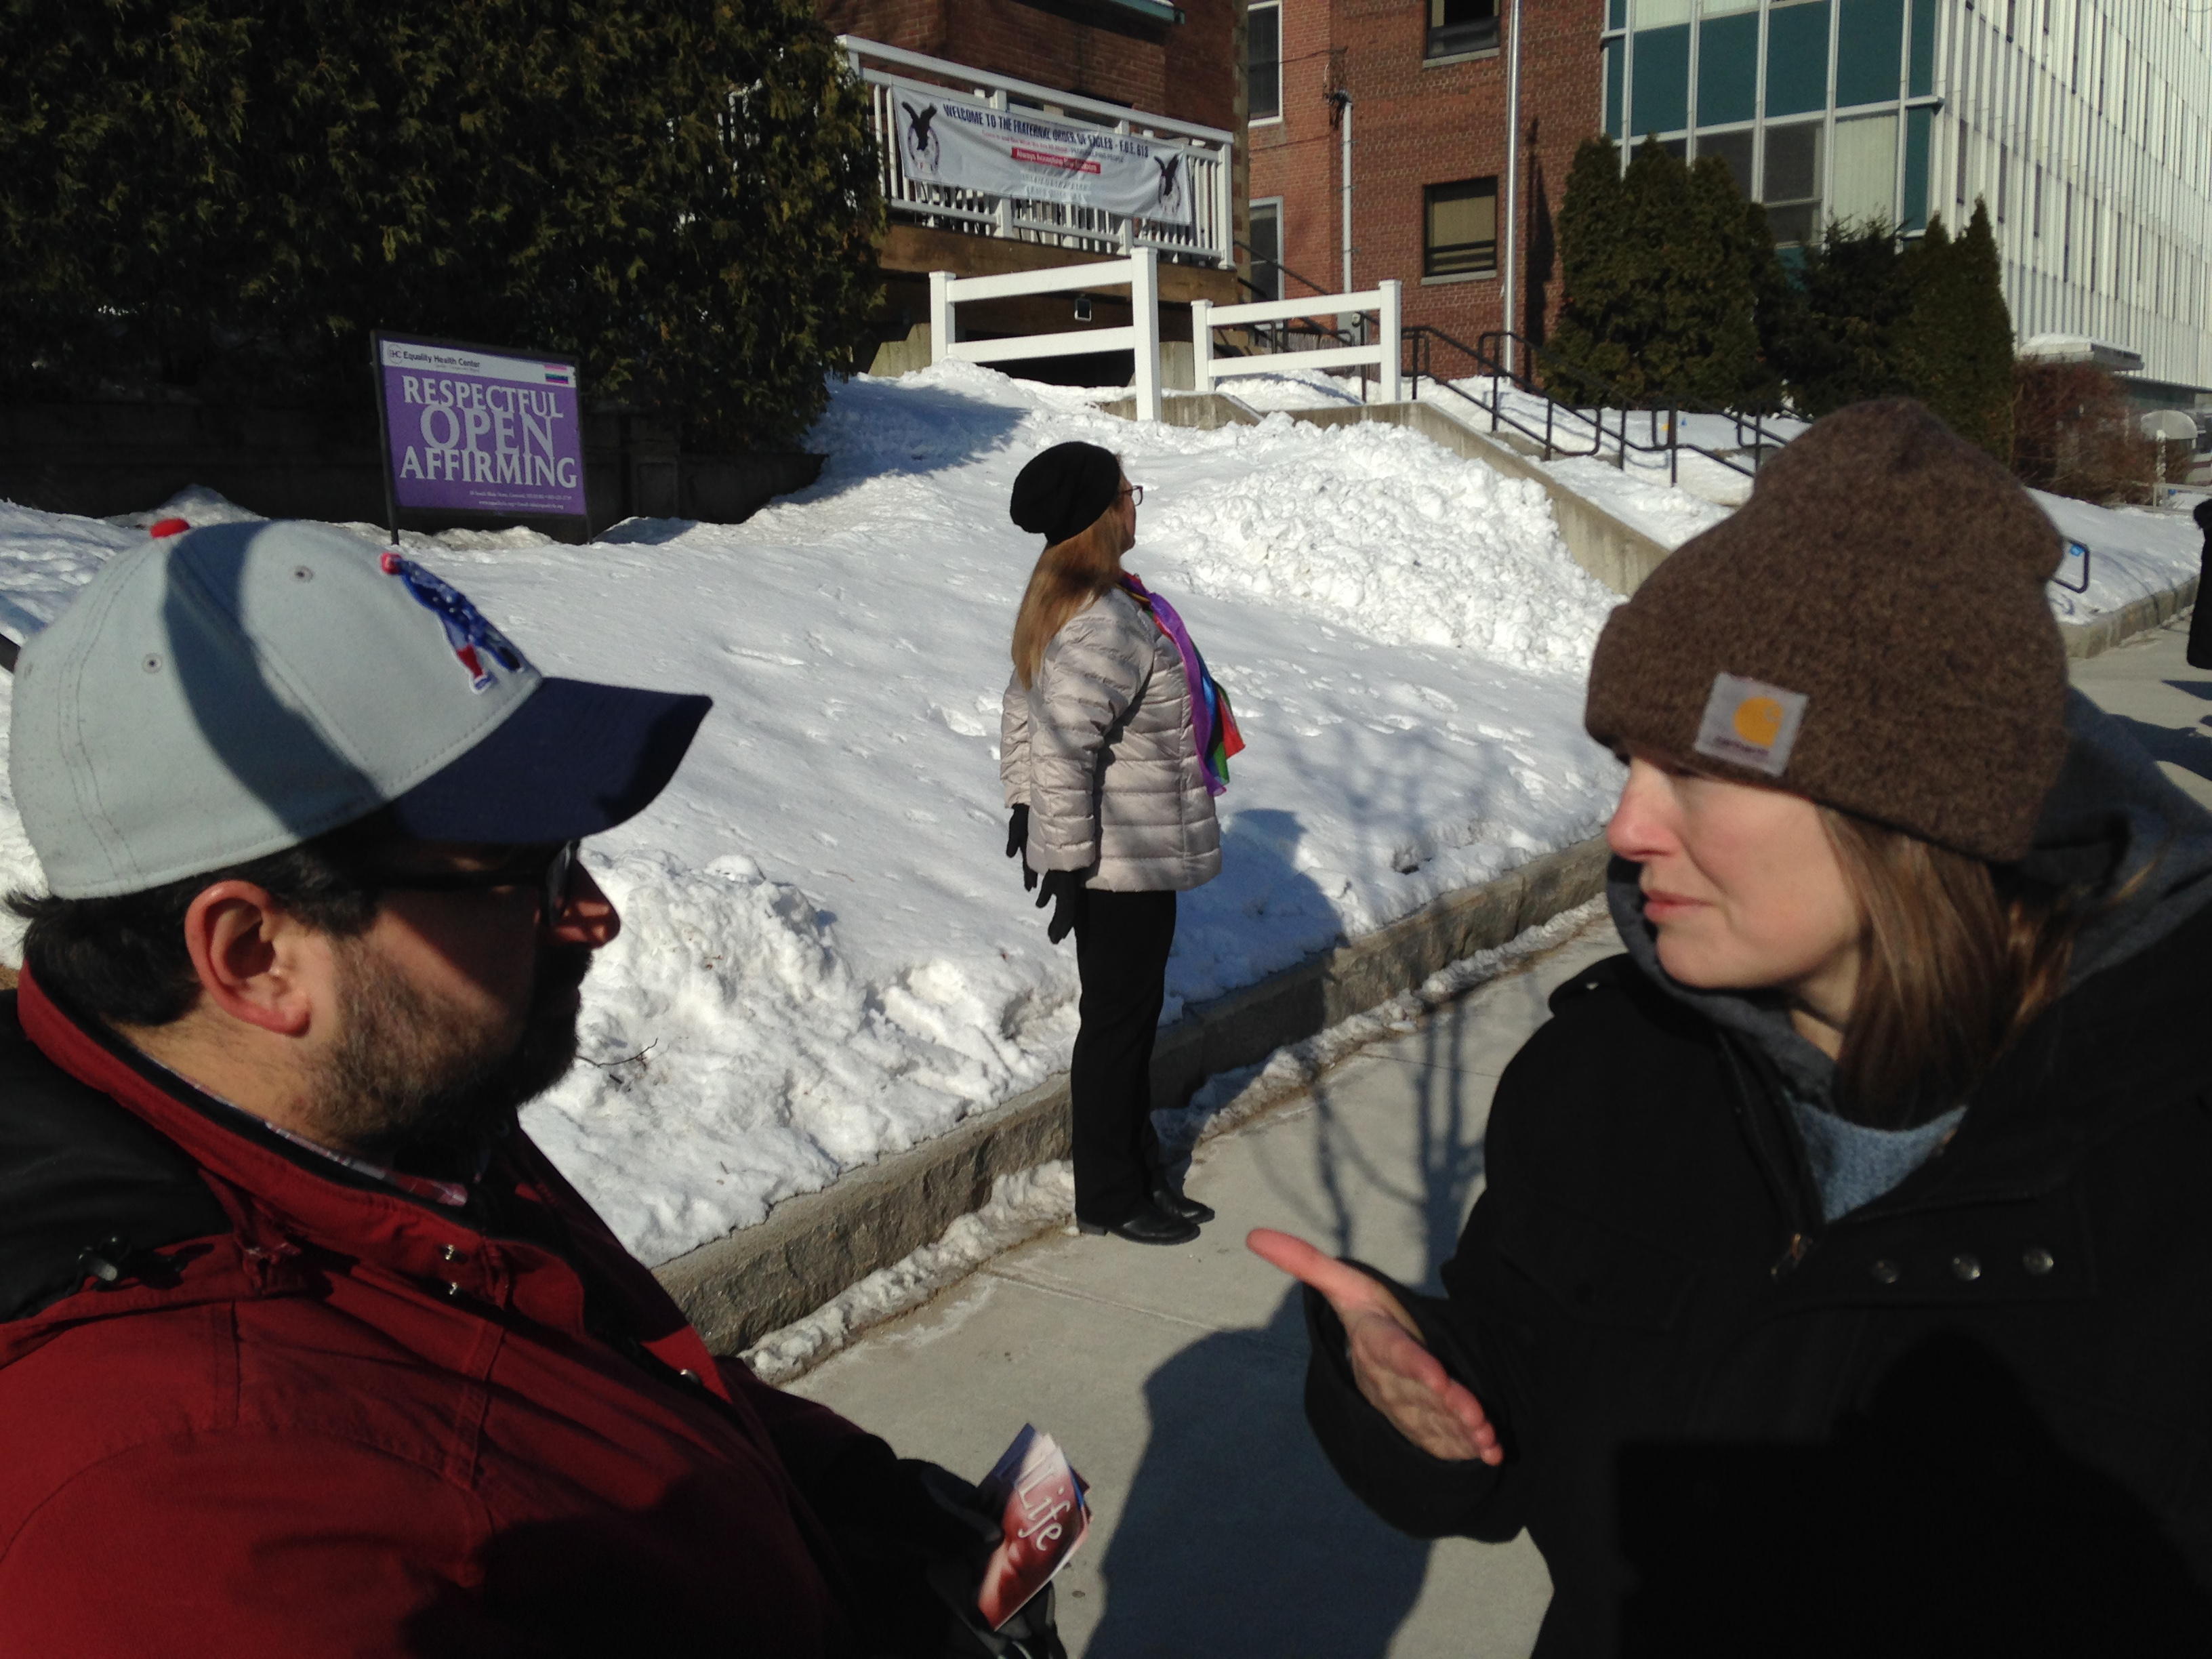 """This is Beth, and she runs a Roman Catholic anti-abortion ministry called """"40 Days for Life.""""  Dalia, the head of the clinic, called Beth and convinced her to come and talk us out of being there. Seriously!   This Roman Catholic woman, Beth, shook hands with Dalia and tried to persuade us to stand there and silently pray, but not offer help, nor talk to anyone.   Beth said that's the right way to do this. Seriously?  No wonder Dalia likes Beth. Beth doesn't reach out to the Moms. She just stands there with a large poster of Mary around her neck.  The clinic will do ANYTHING to silence the truth that babies don't have to die, and young vulnerable Moms don't need to be injured."""